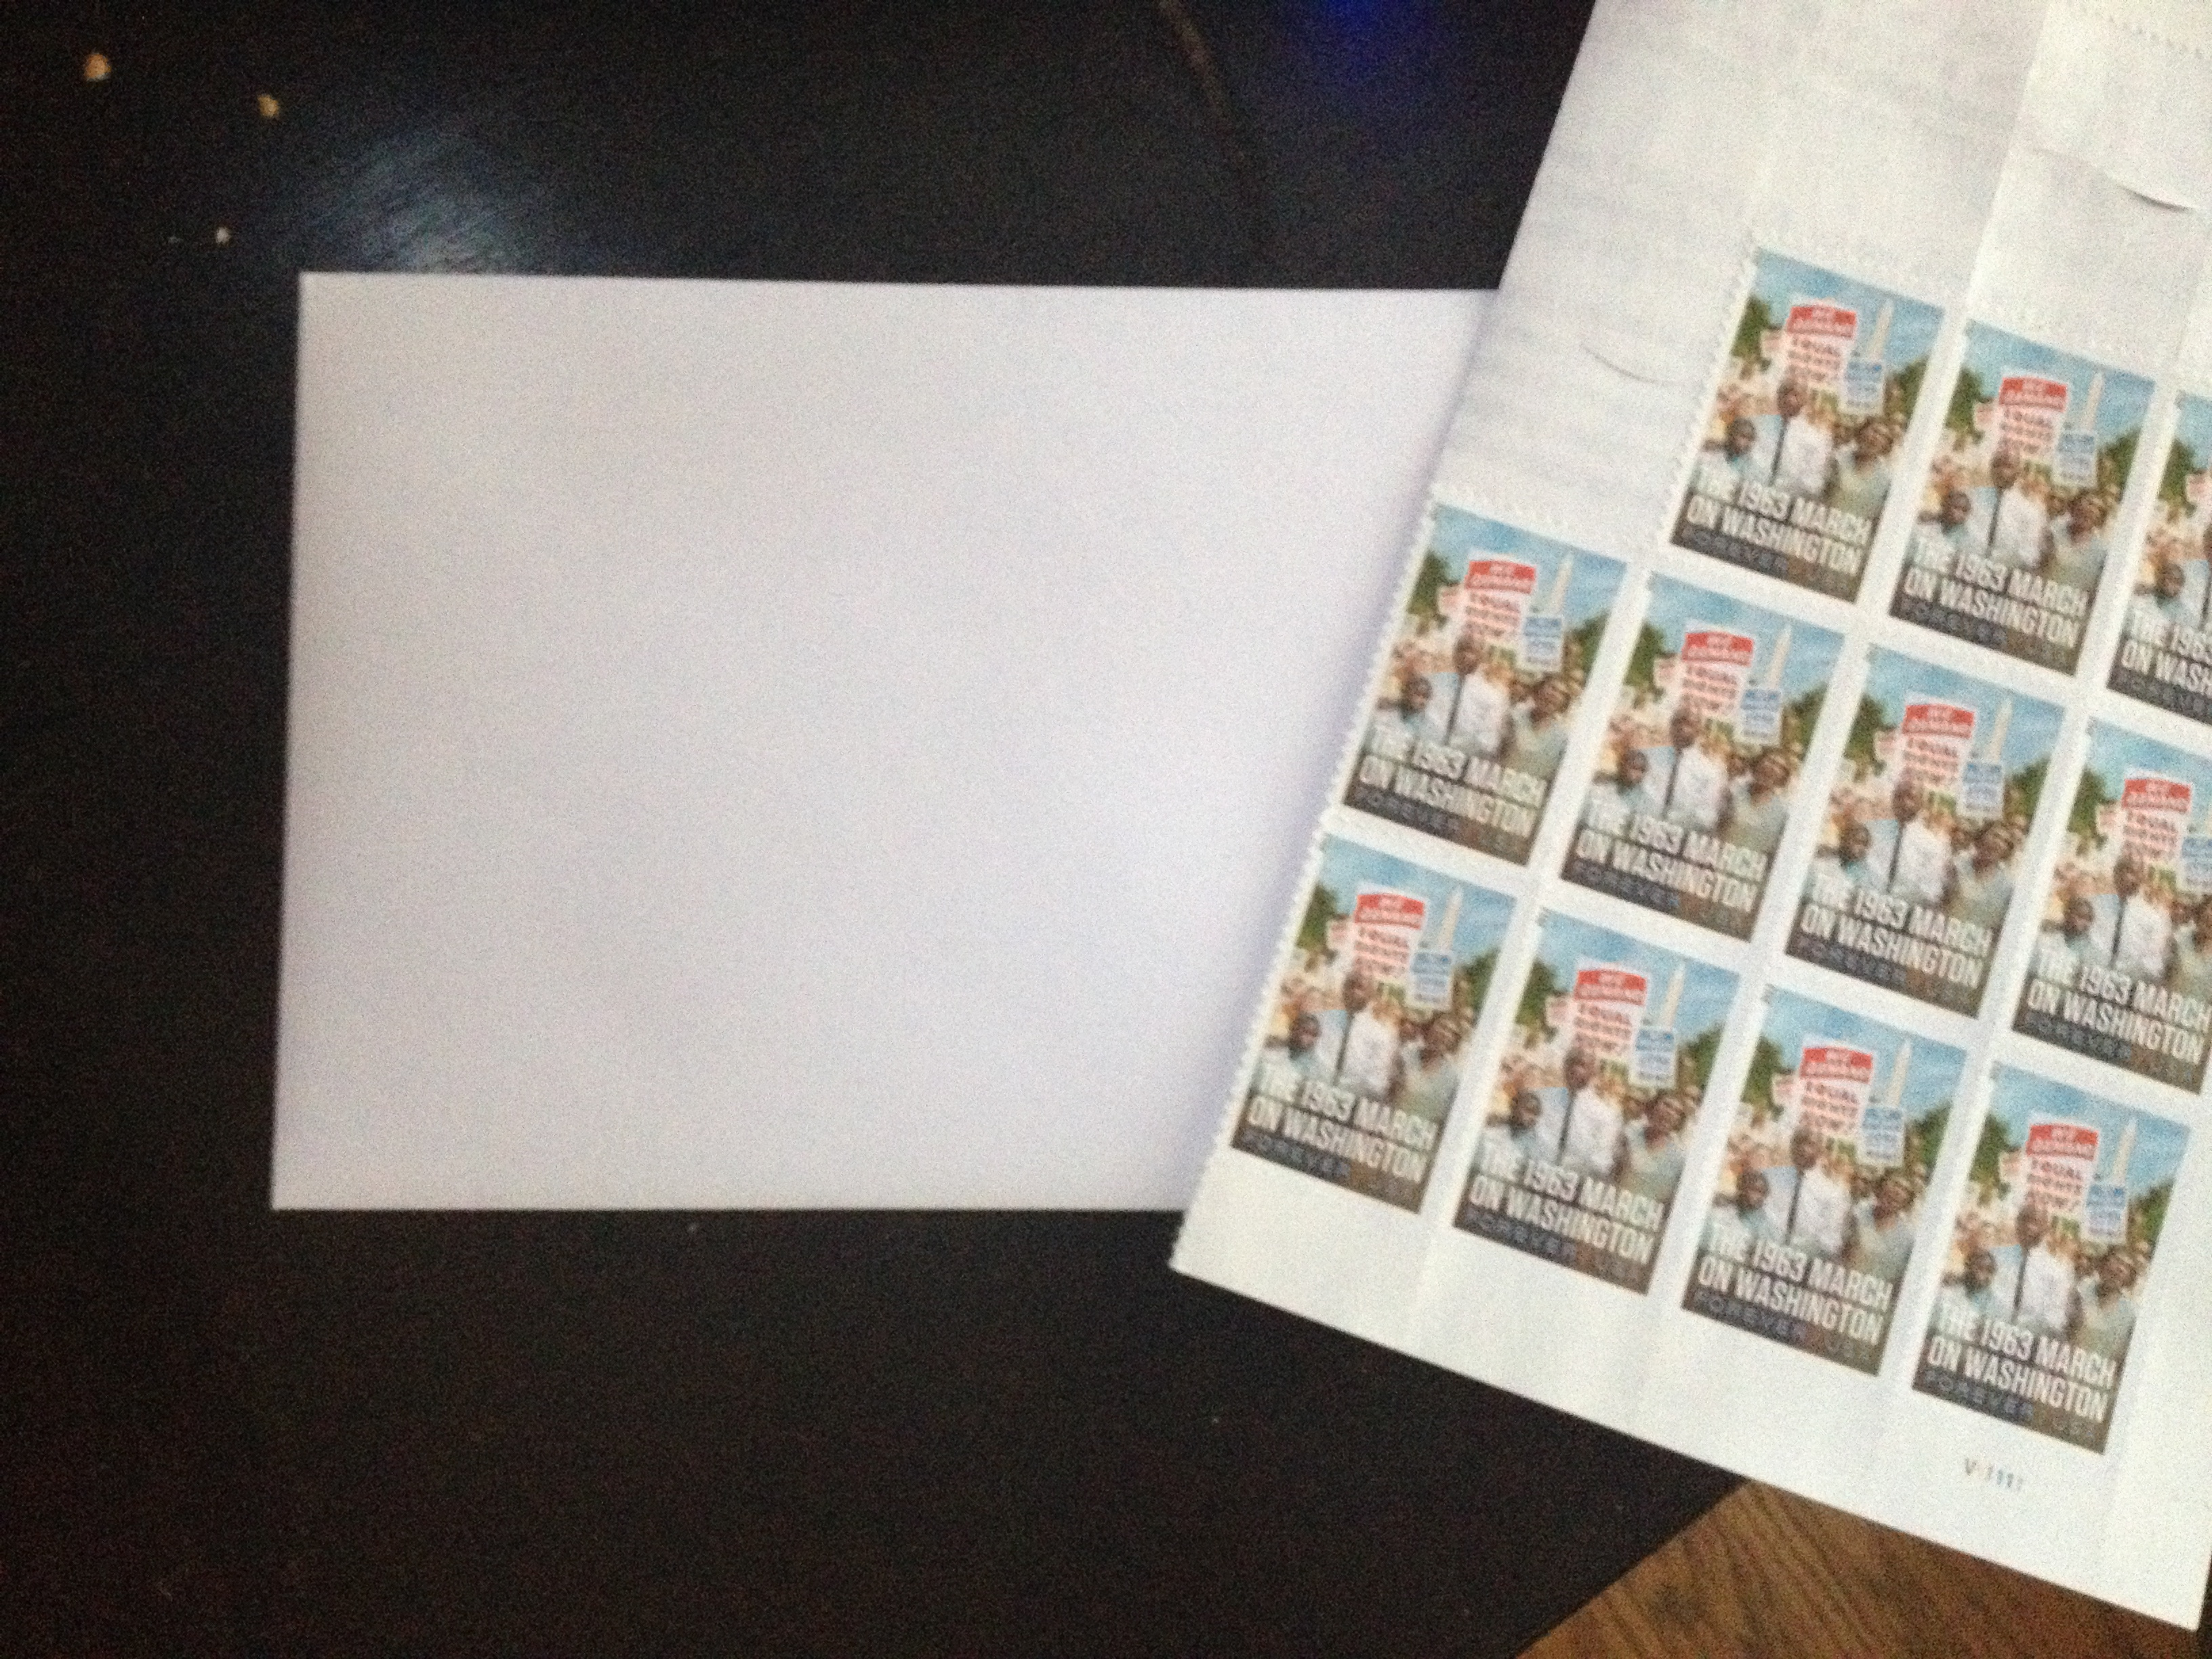 Ars editor Cyrus Farivar's actual envelopes and stamps